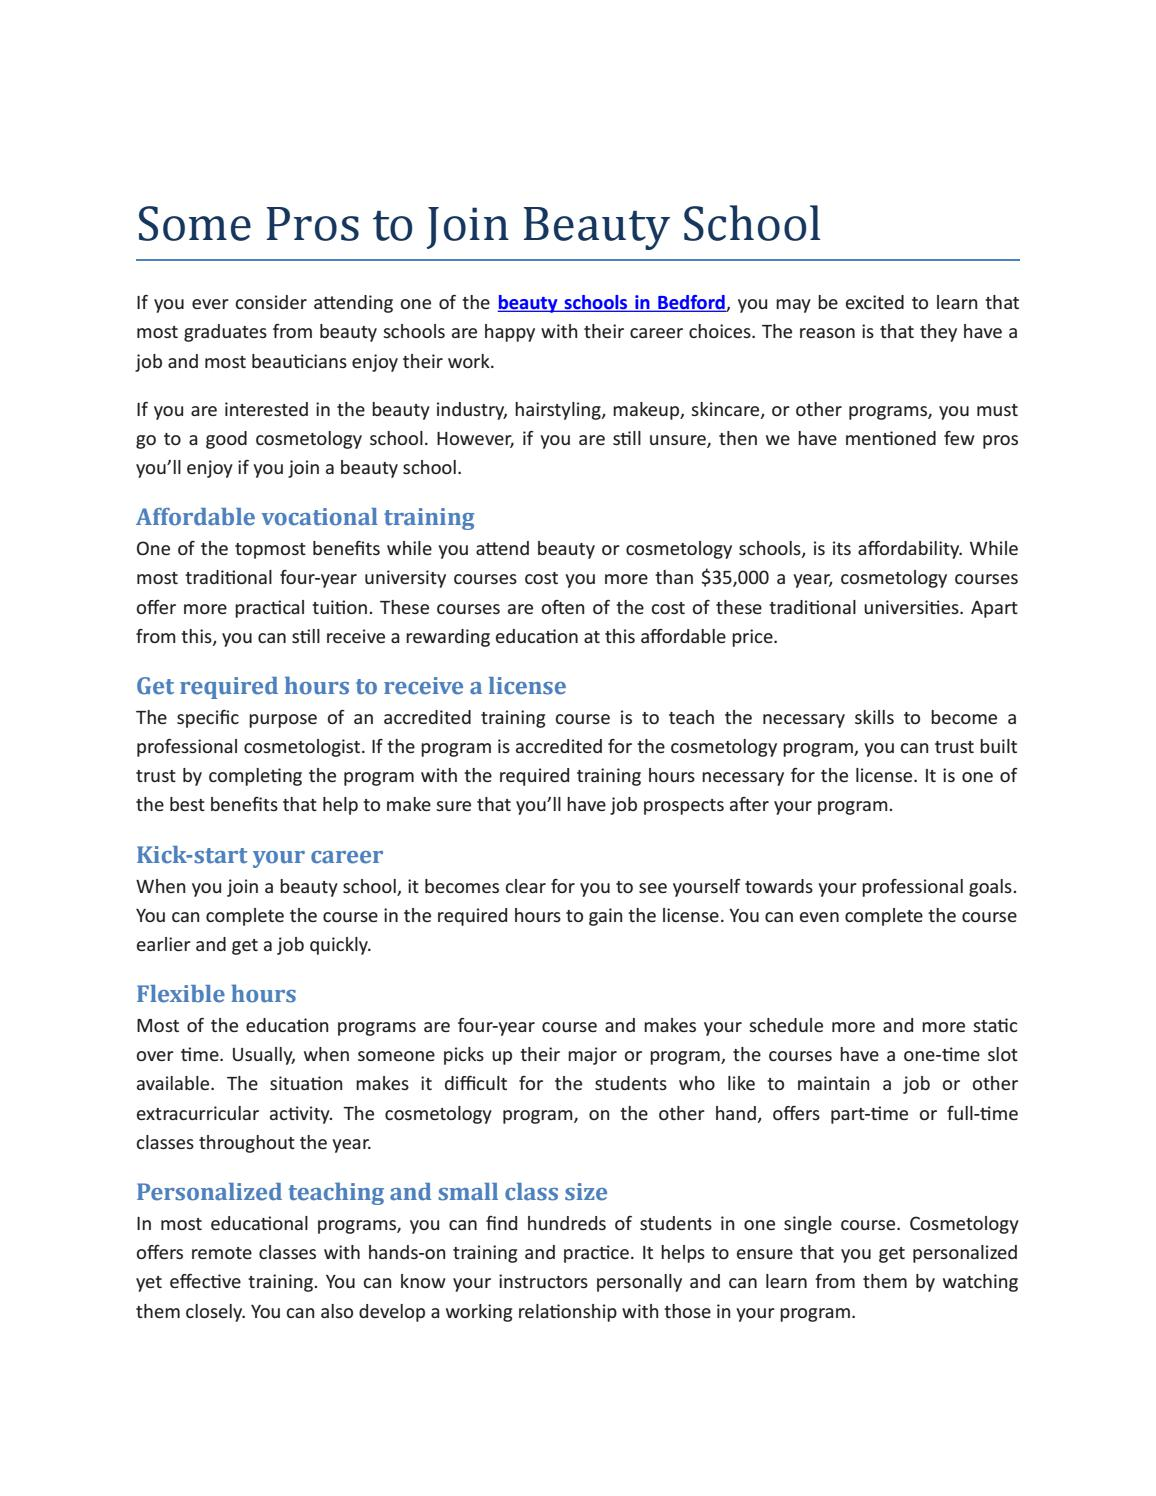 Some Pros to Join Beauty School